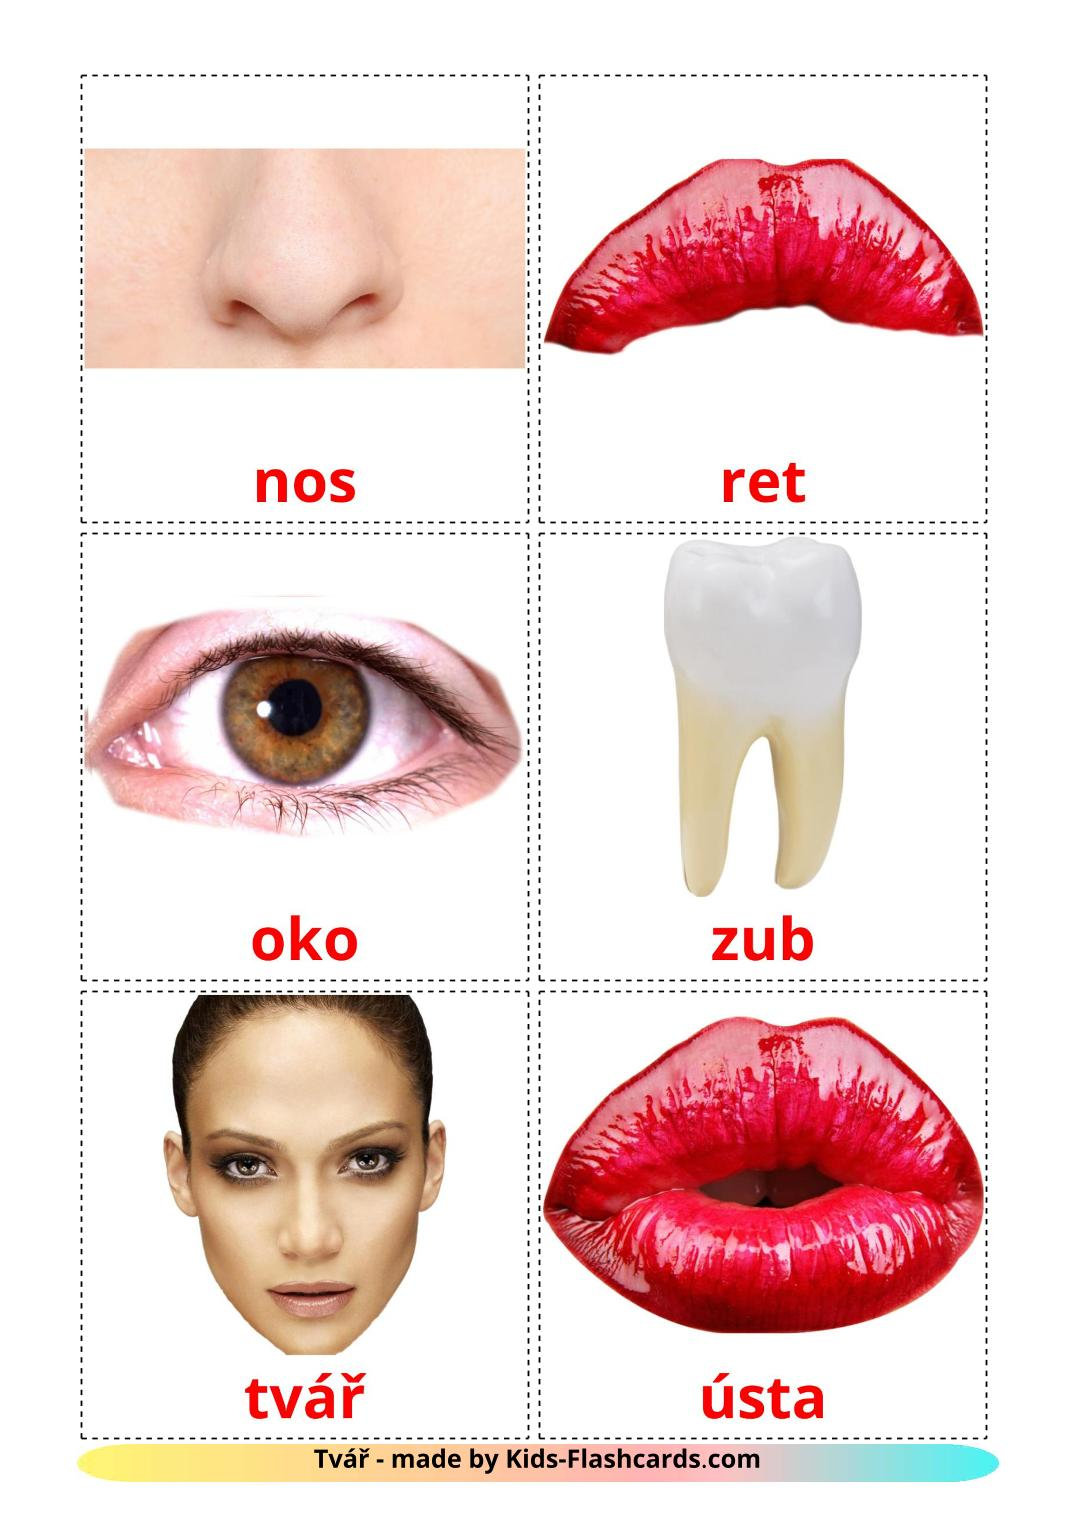 Face - 20 Free Printable czech Flashcards